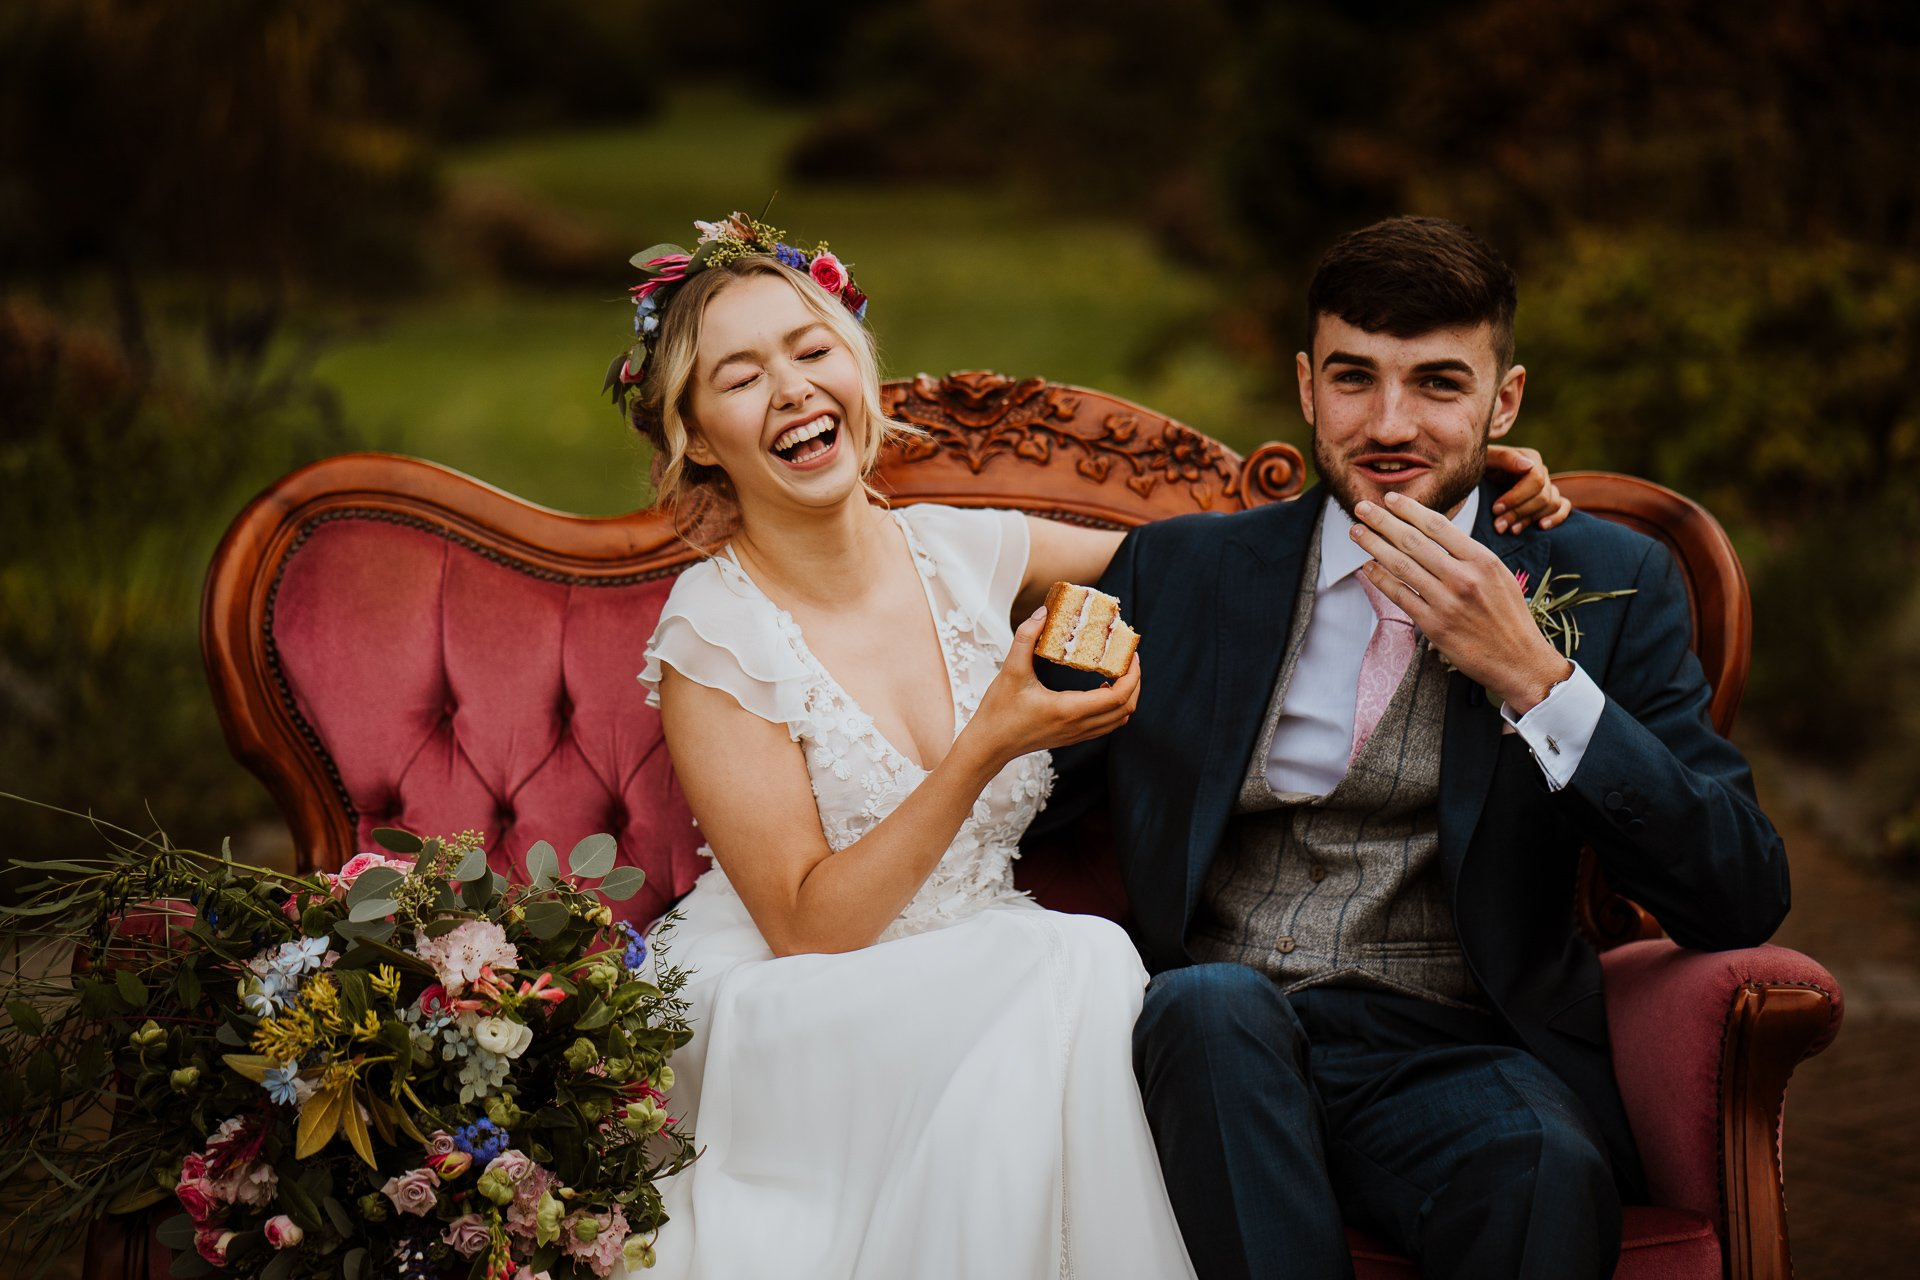 Bride and Groom laughing together eating wedding cake during their wedding day